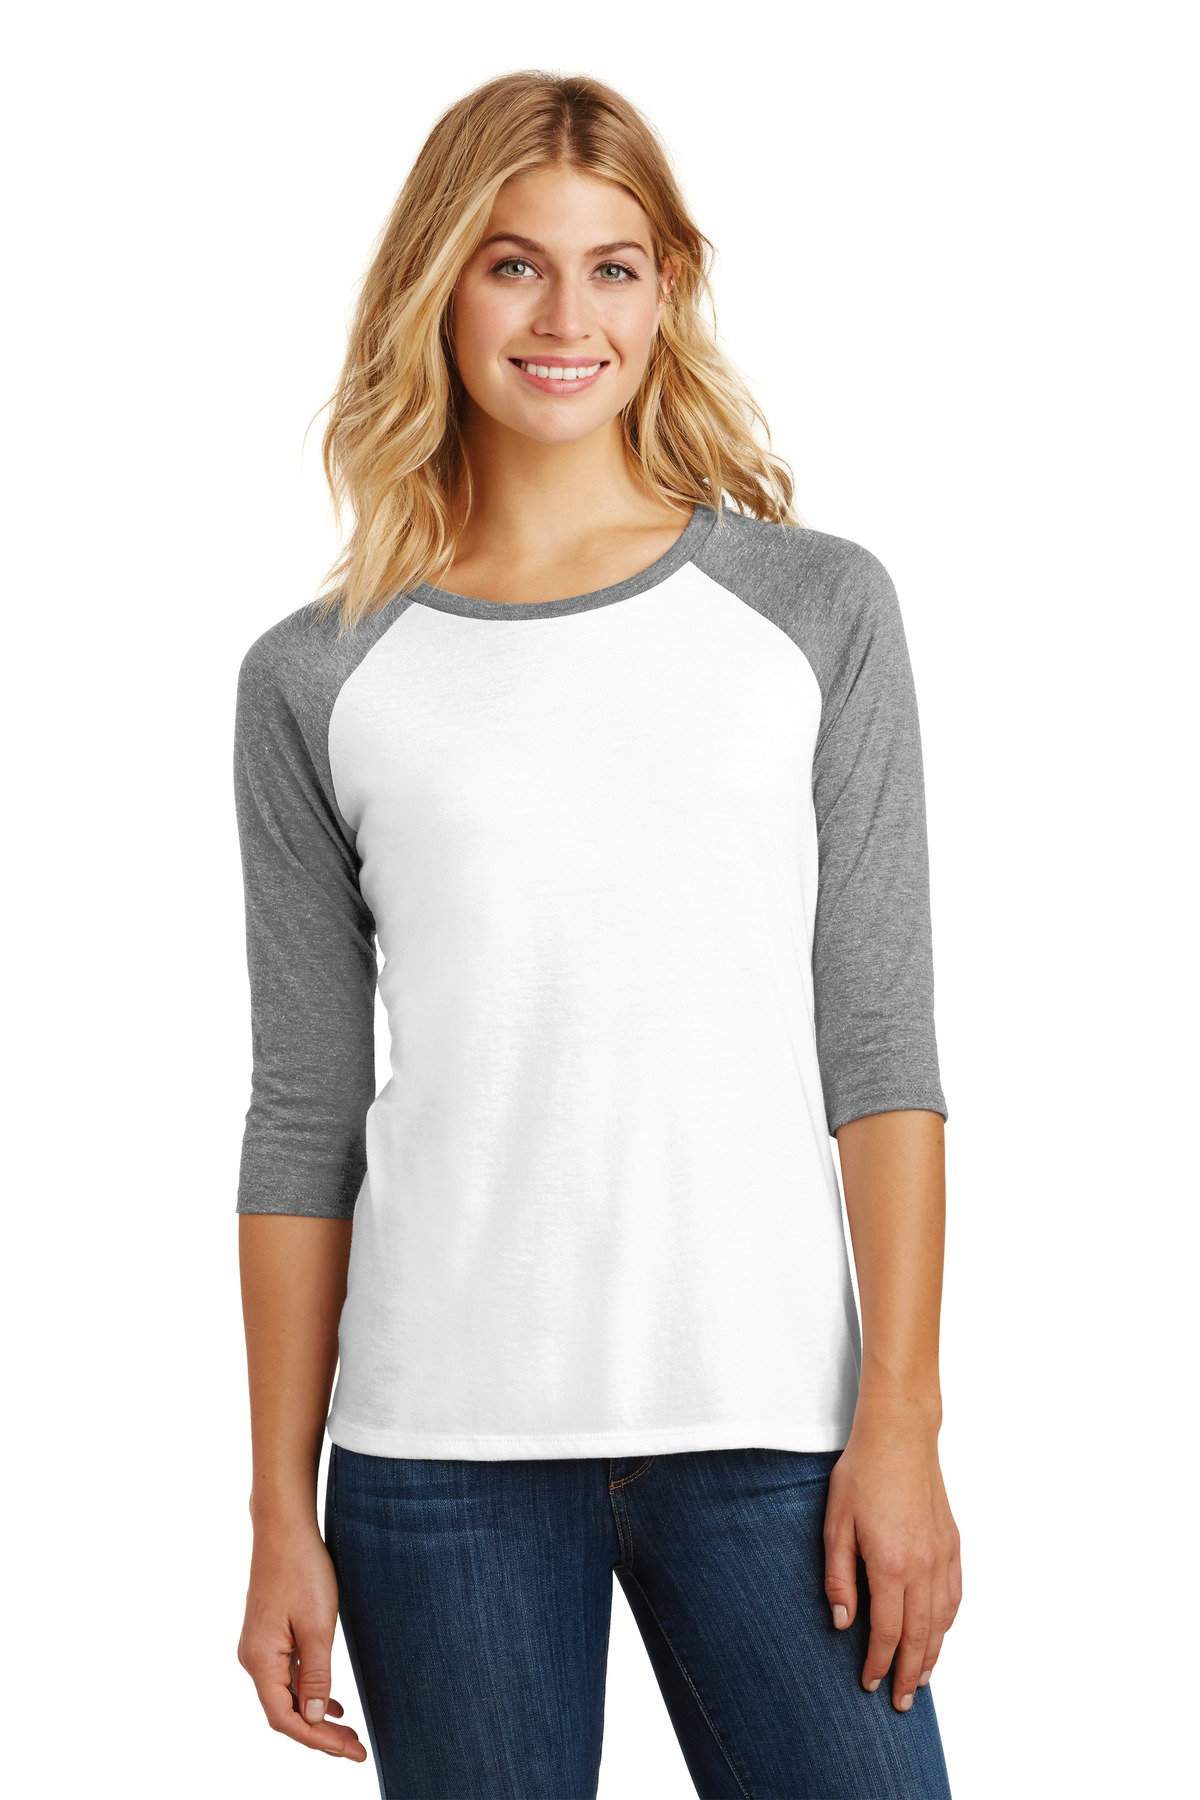 District ®  Women's Perfect Tri ®  3/4-Sleeve Raglan. DM136L - Grey Frost/ White